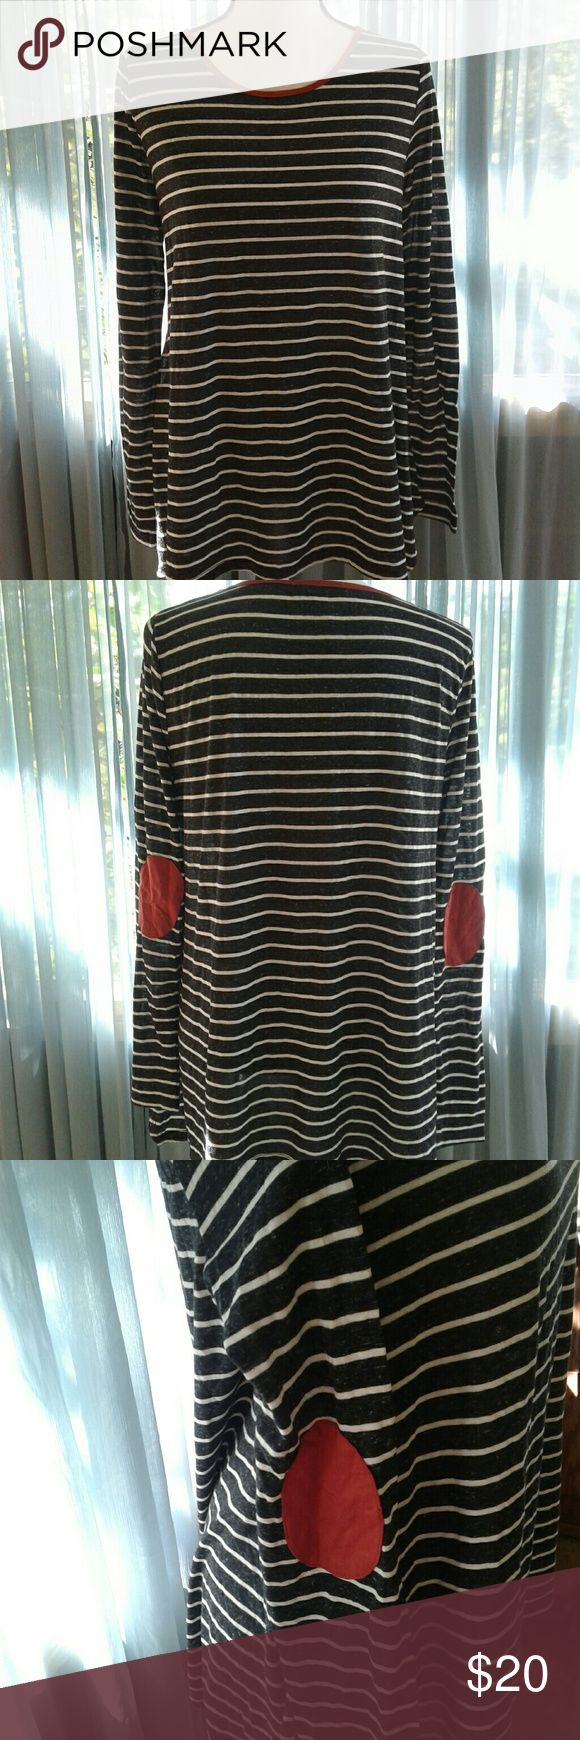 """NWT Umgee top Women's brand new with tags Umgee black and white stripe long sleeve asymmetrical top with copper elbow patches and trim around neckline. Size Medium. Measurements SS 16"""" Chest 20"""" length 25"""" sleeve 26"""". Thanks for looking! Bundle to save! Umgee Tops Tees - Long Sleeve"""